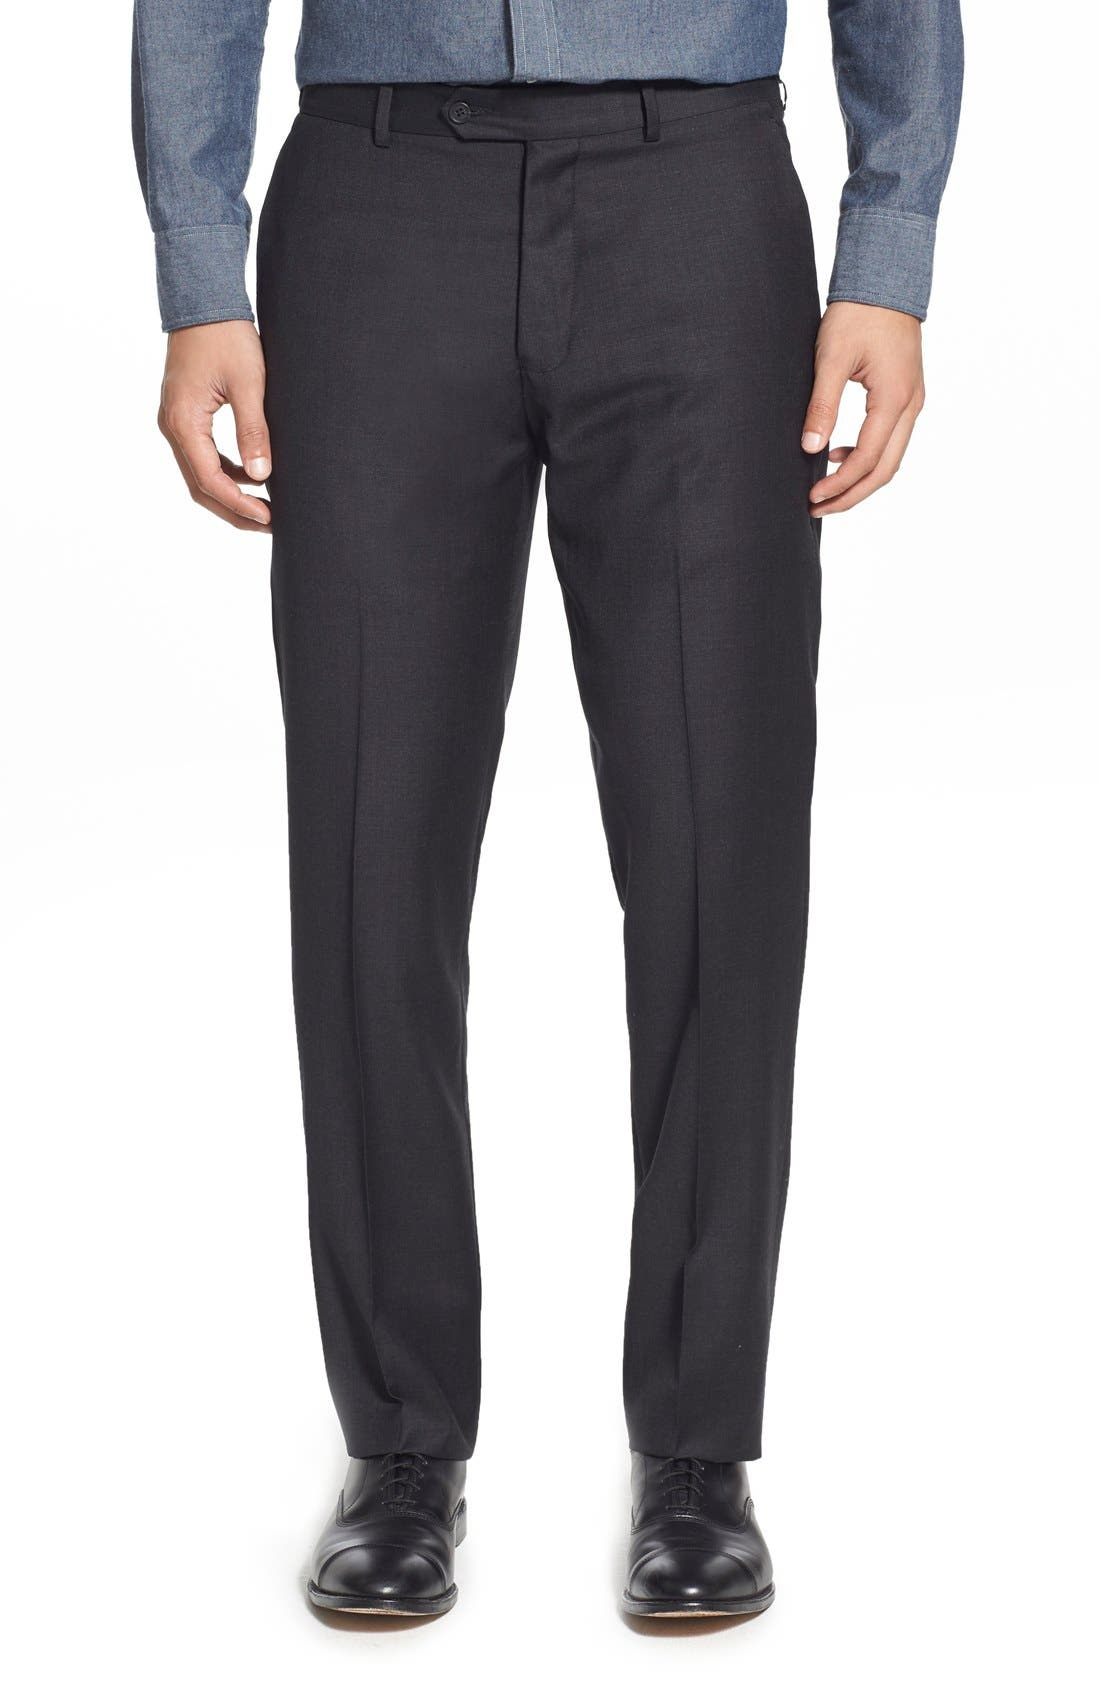 'Dagger' Flat Front Solid Wool Trousers,                             Main thumbnail 1, color,                             020